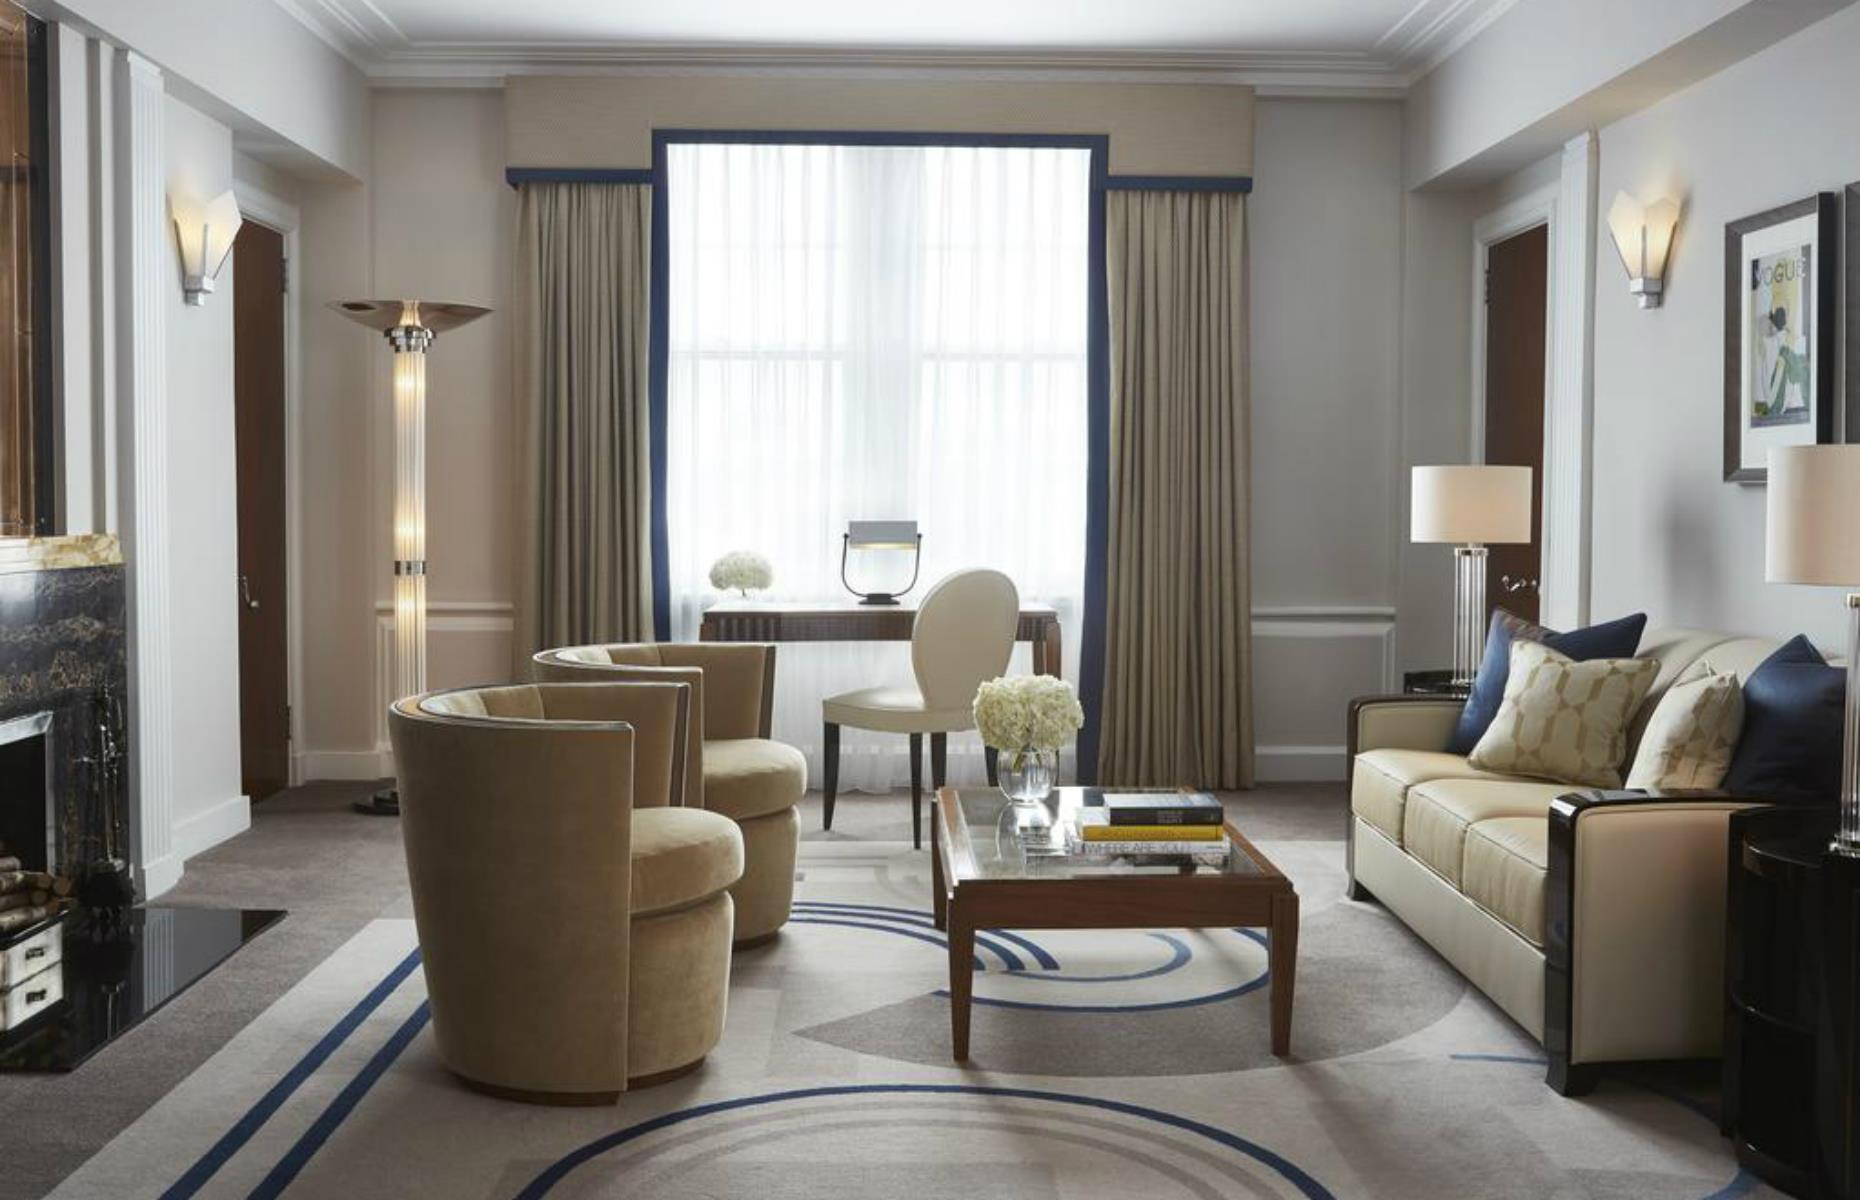 Slide 24 of 24: This landmark London Mayfair hotel is as timeless as they come. Concierges first held open the doors in 1856 and it was remodeled in an Art Deco style in the 1920s. Since then, Claridge's has stayedtrue to that elegant period, with a restoration in the 1990s based on archive photographs. Tired furnishings have been replaced with luxurious fabrics and pieces that reflect the opulent glamor of the era that made it an icon.